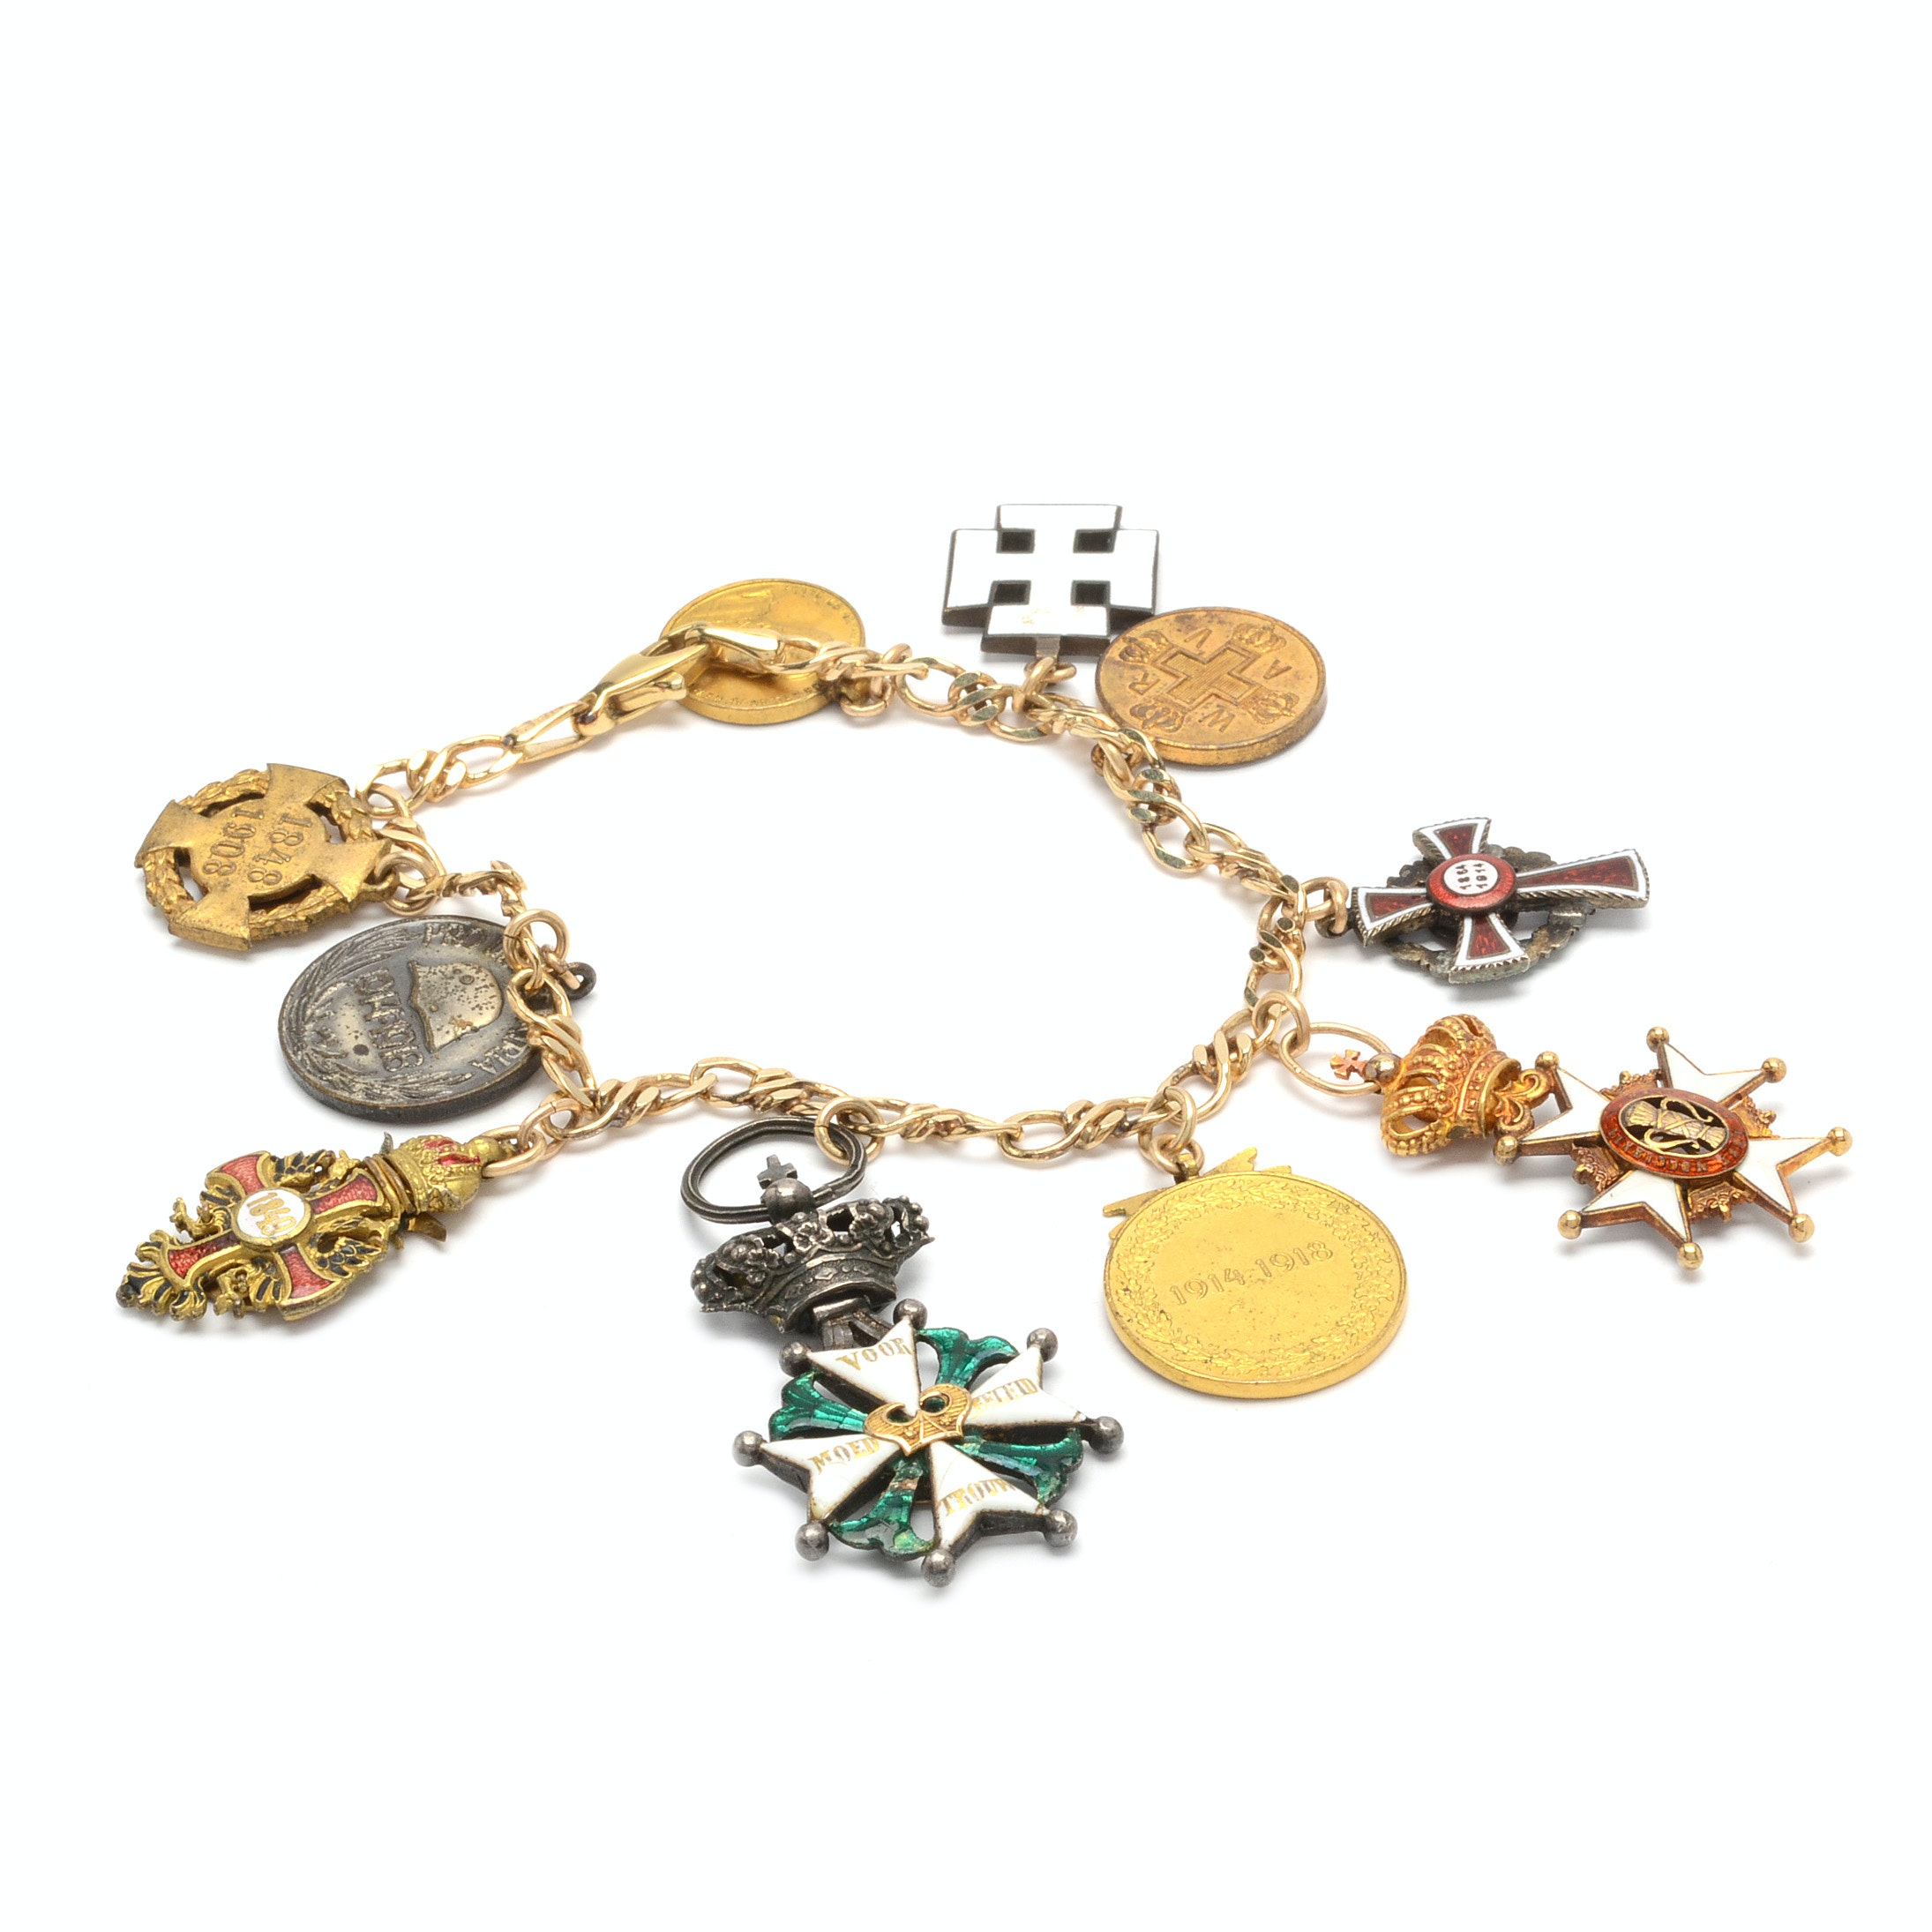 14K Gold Charm Bracelet With Coins and Miniature Medals